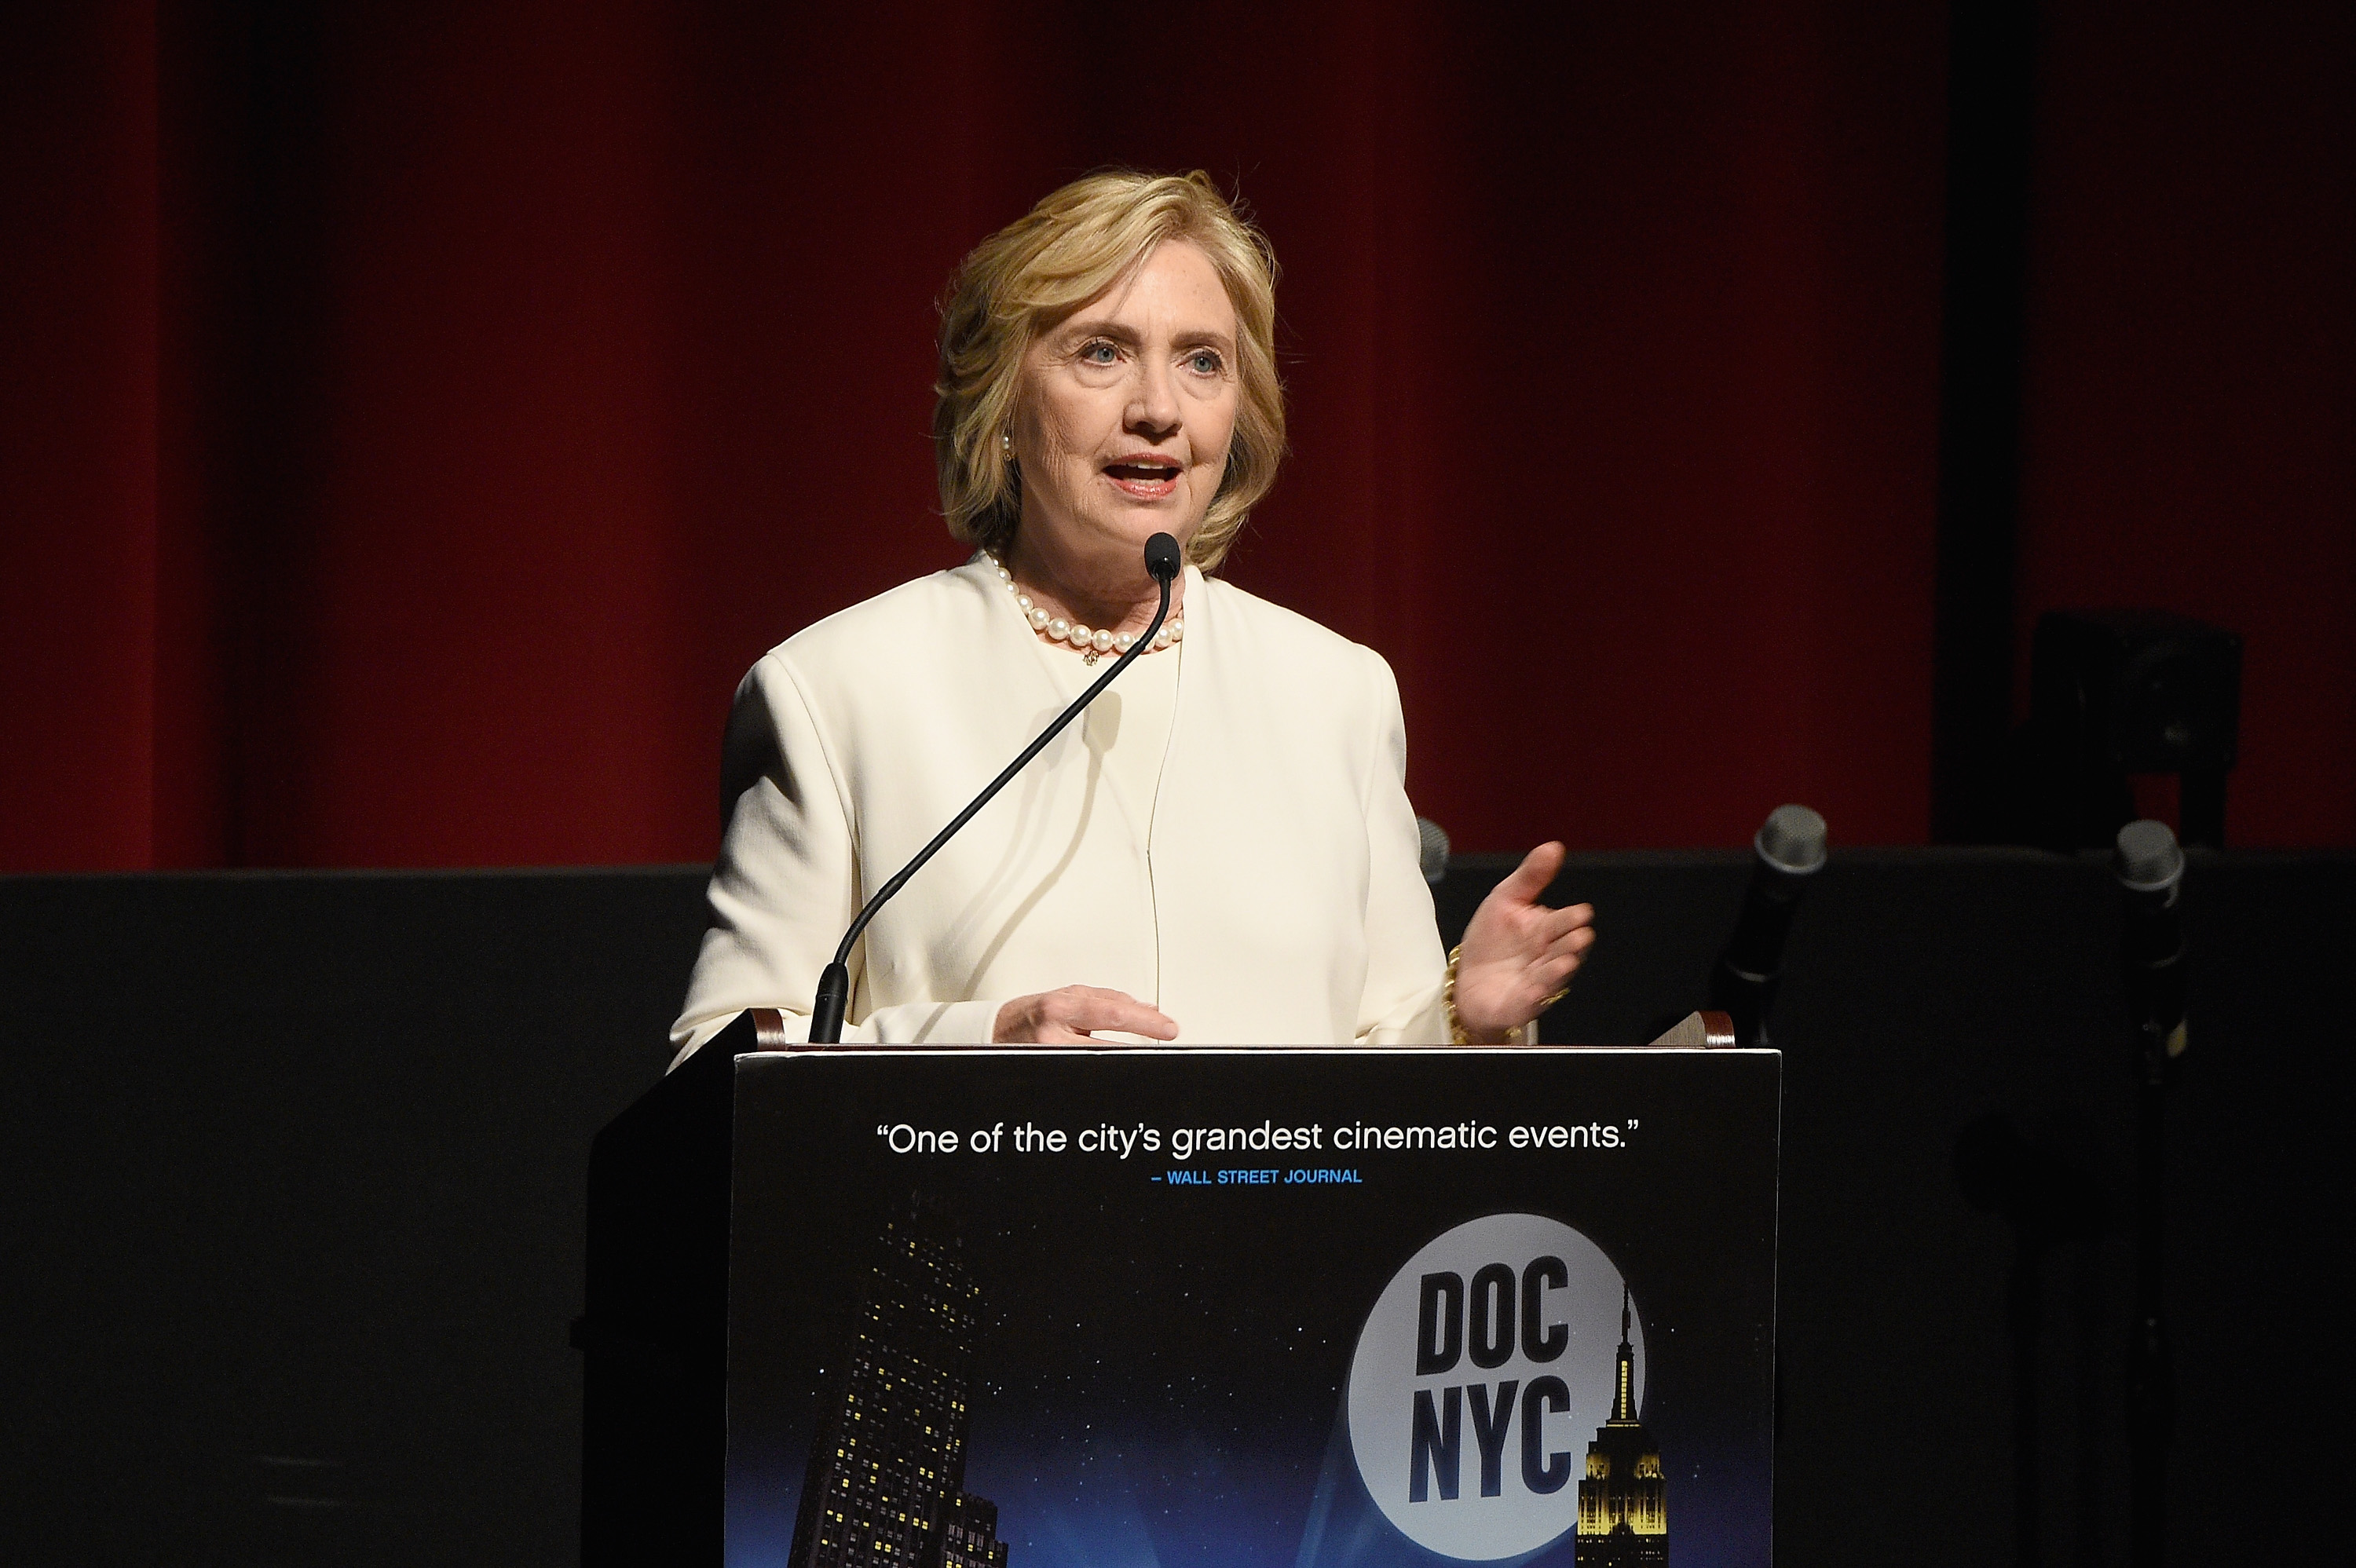 NEW YORK, NY - NOVEMBER 19:  Former United States Secretary of State Hillary Clinton speaks on stage at AOL's MAKERS: Once And For All Premiere at the DOC NYC on November 19, 2015 in New York City.  (Photo by Larry Busacca/Getty Images for AOL)